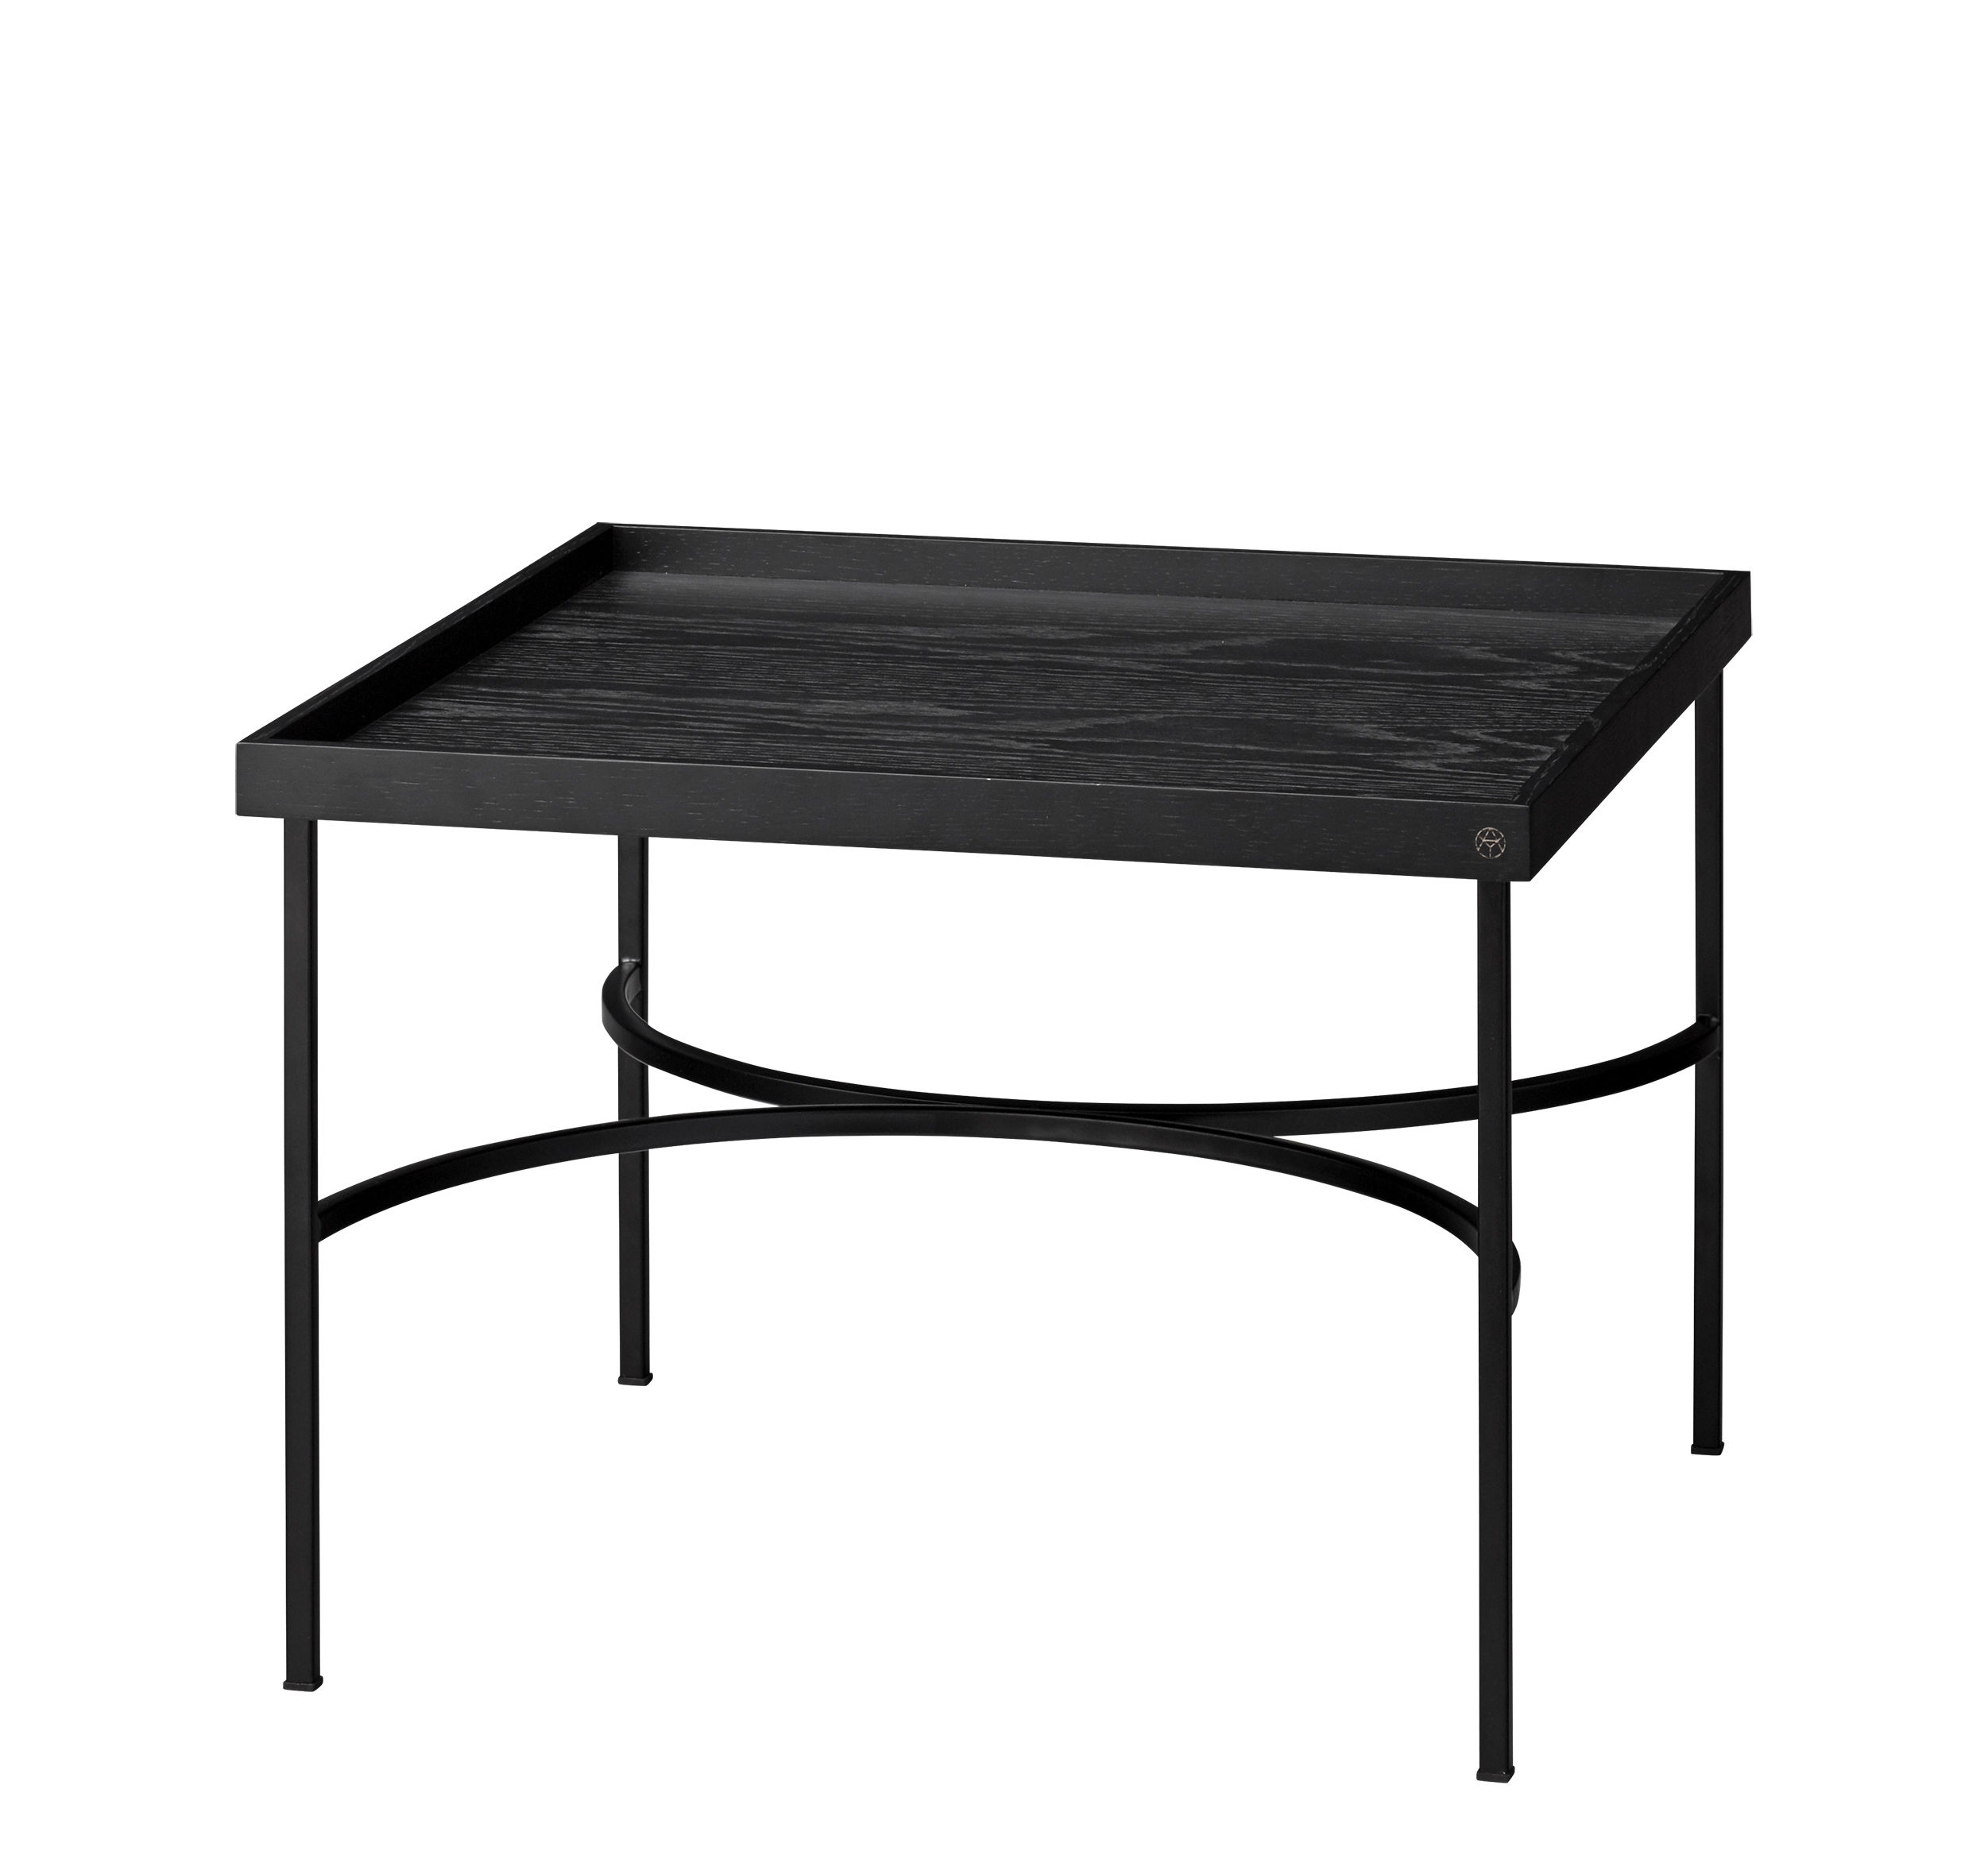 Furniture - Coffee Tables - Unity Coffee table - / Chêne & fer by AYTM - Noir - Lacquered iron, Oak